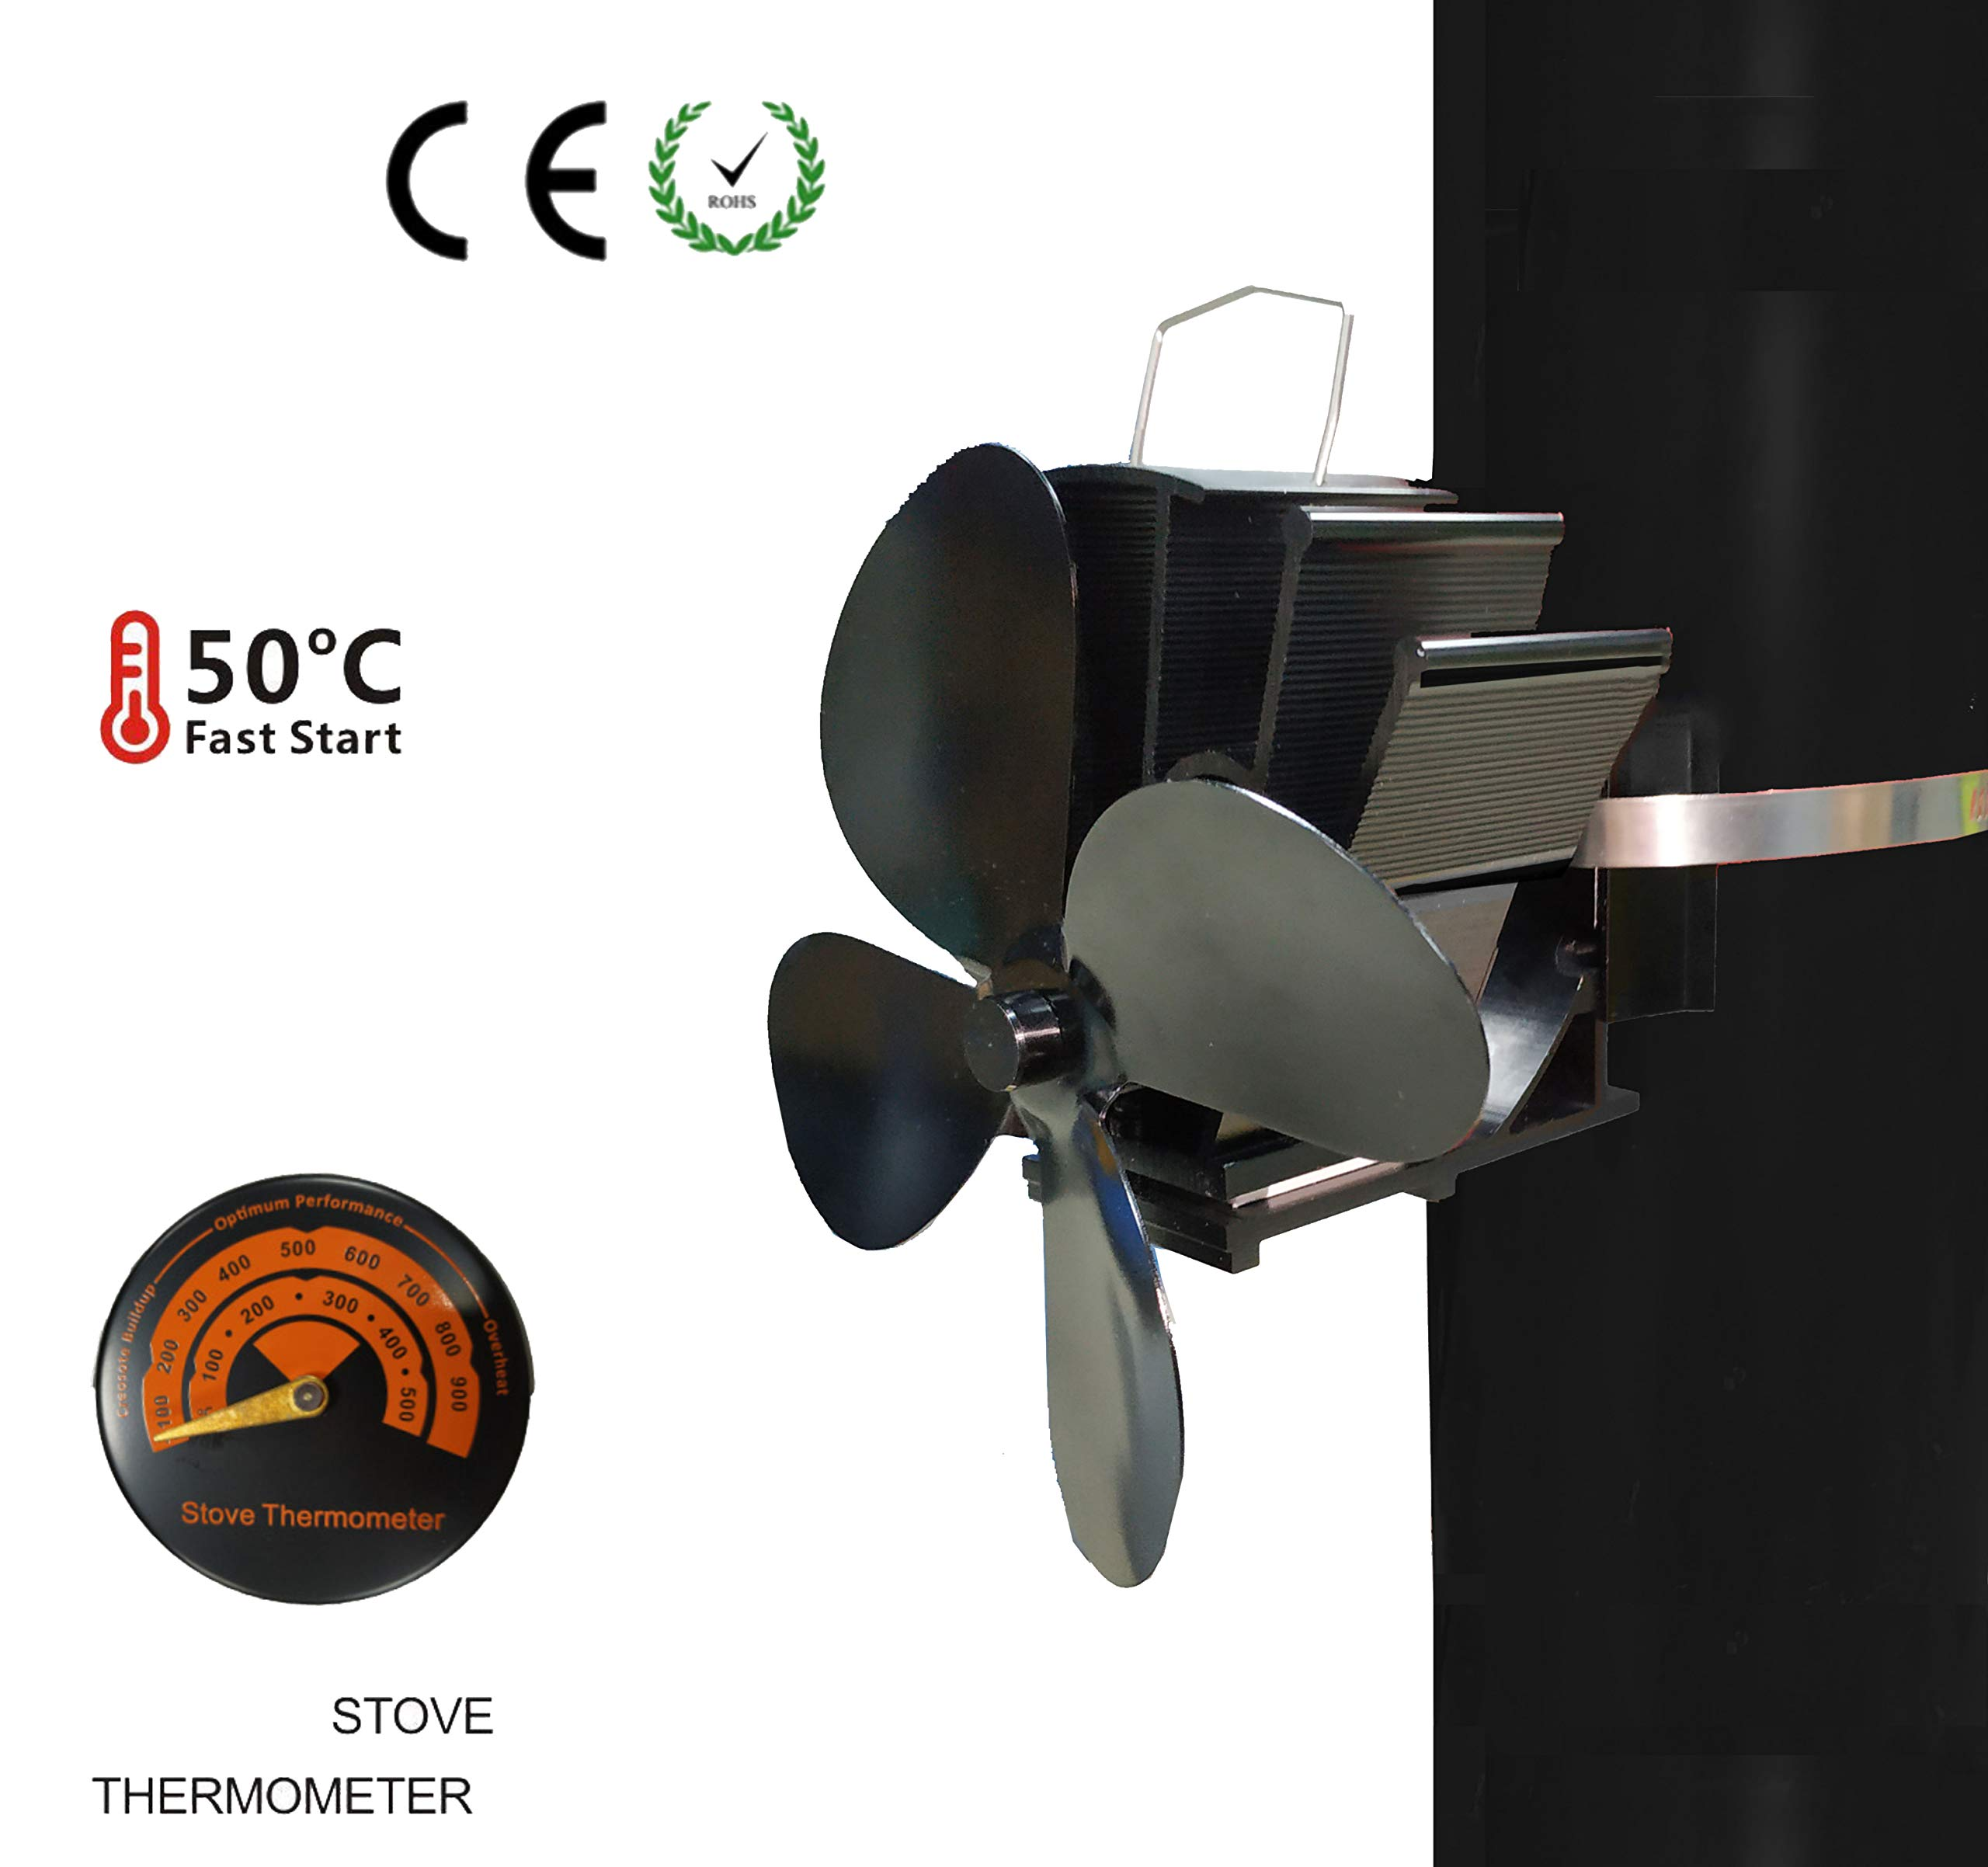 PANDA100 Heat Powered Stove Fan-2019 Upgrade Designed Silent Operation 4 Blades with Stove Thermometer for Wood/Log Burner/Fireplace-Eco Friendly and Efficient Heat Distribution (4 Blades) by PANDA100